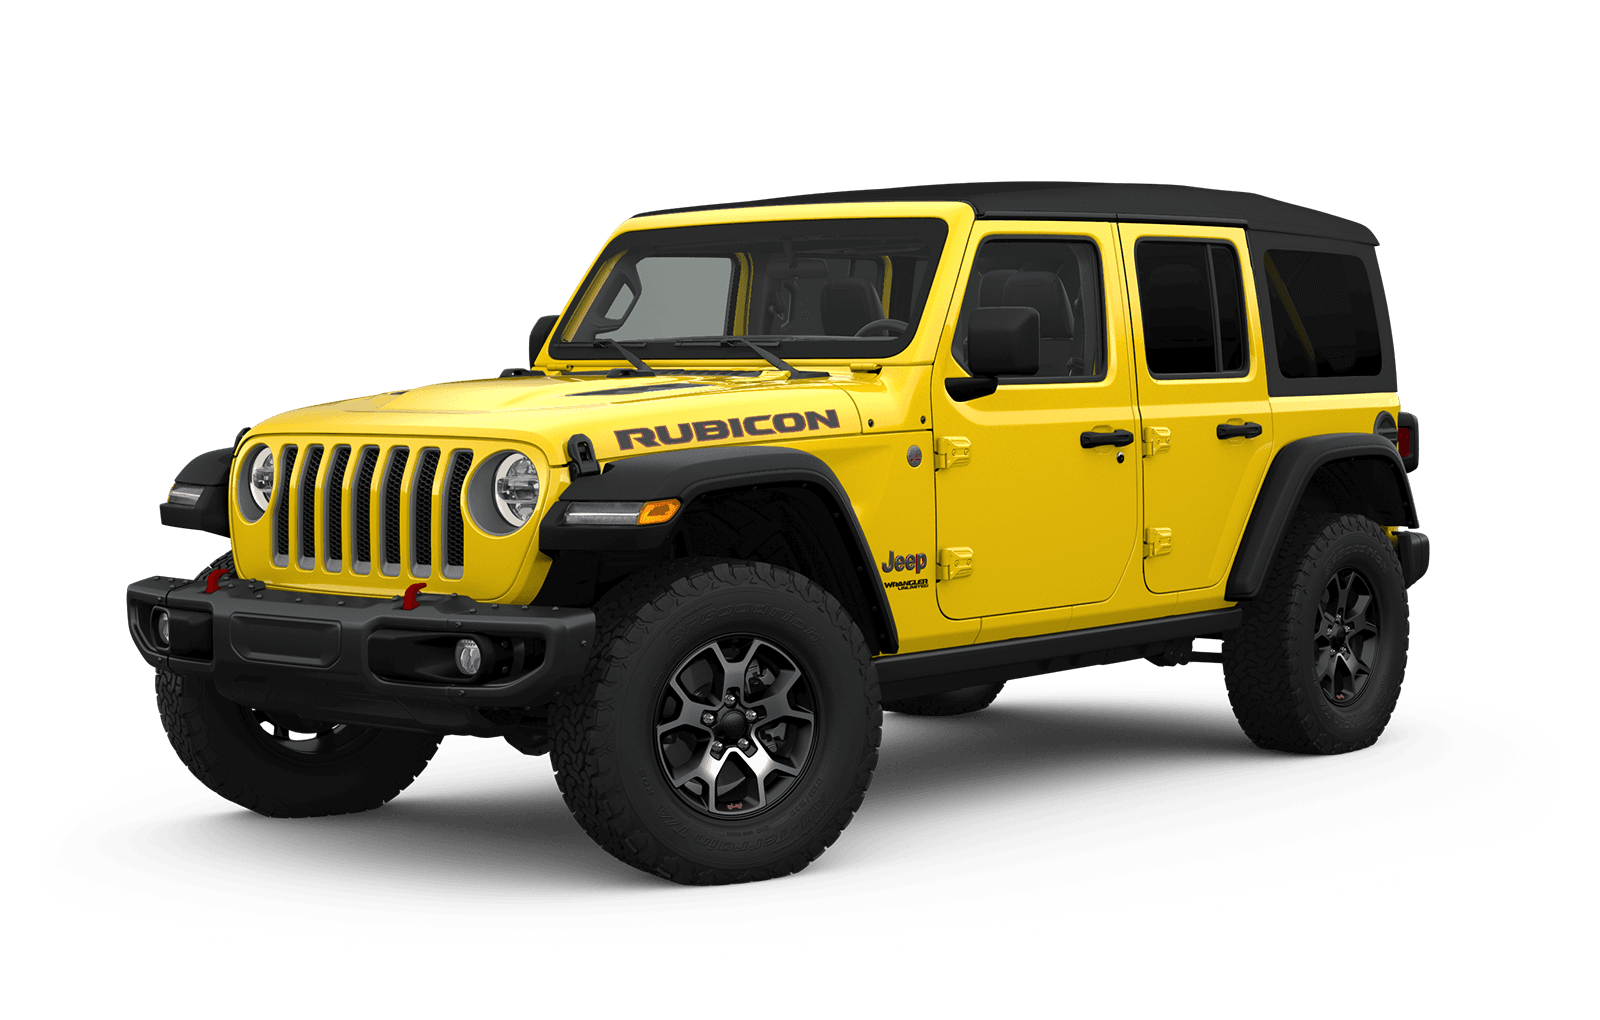 2019 Jeep Wrangler Full View in yellow with Wheels